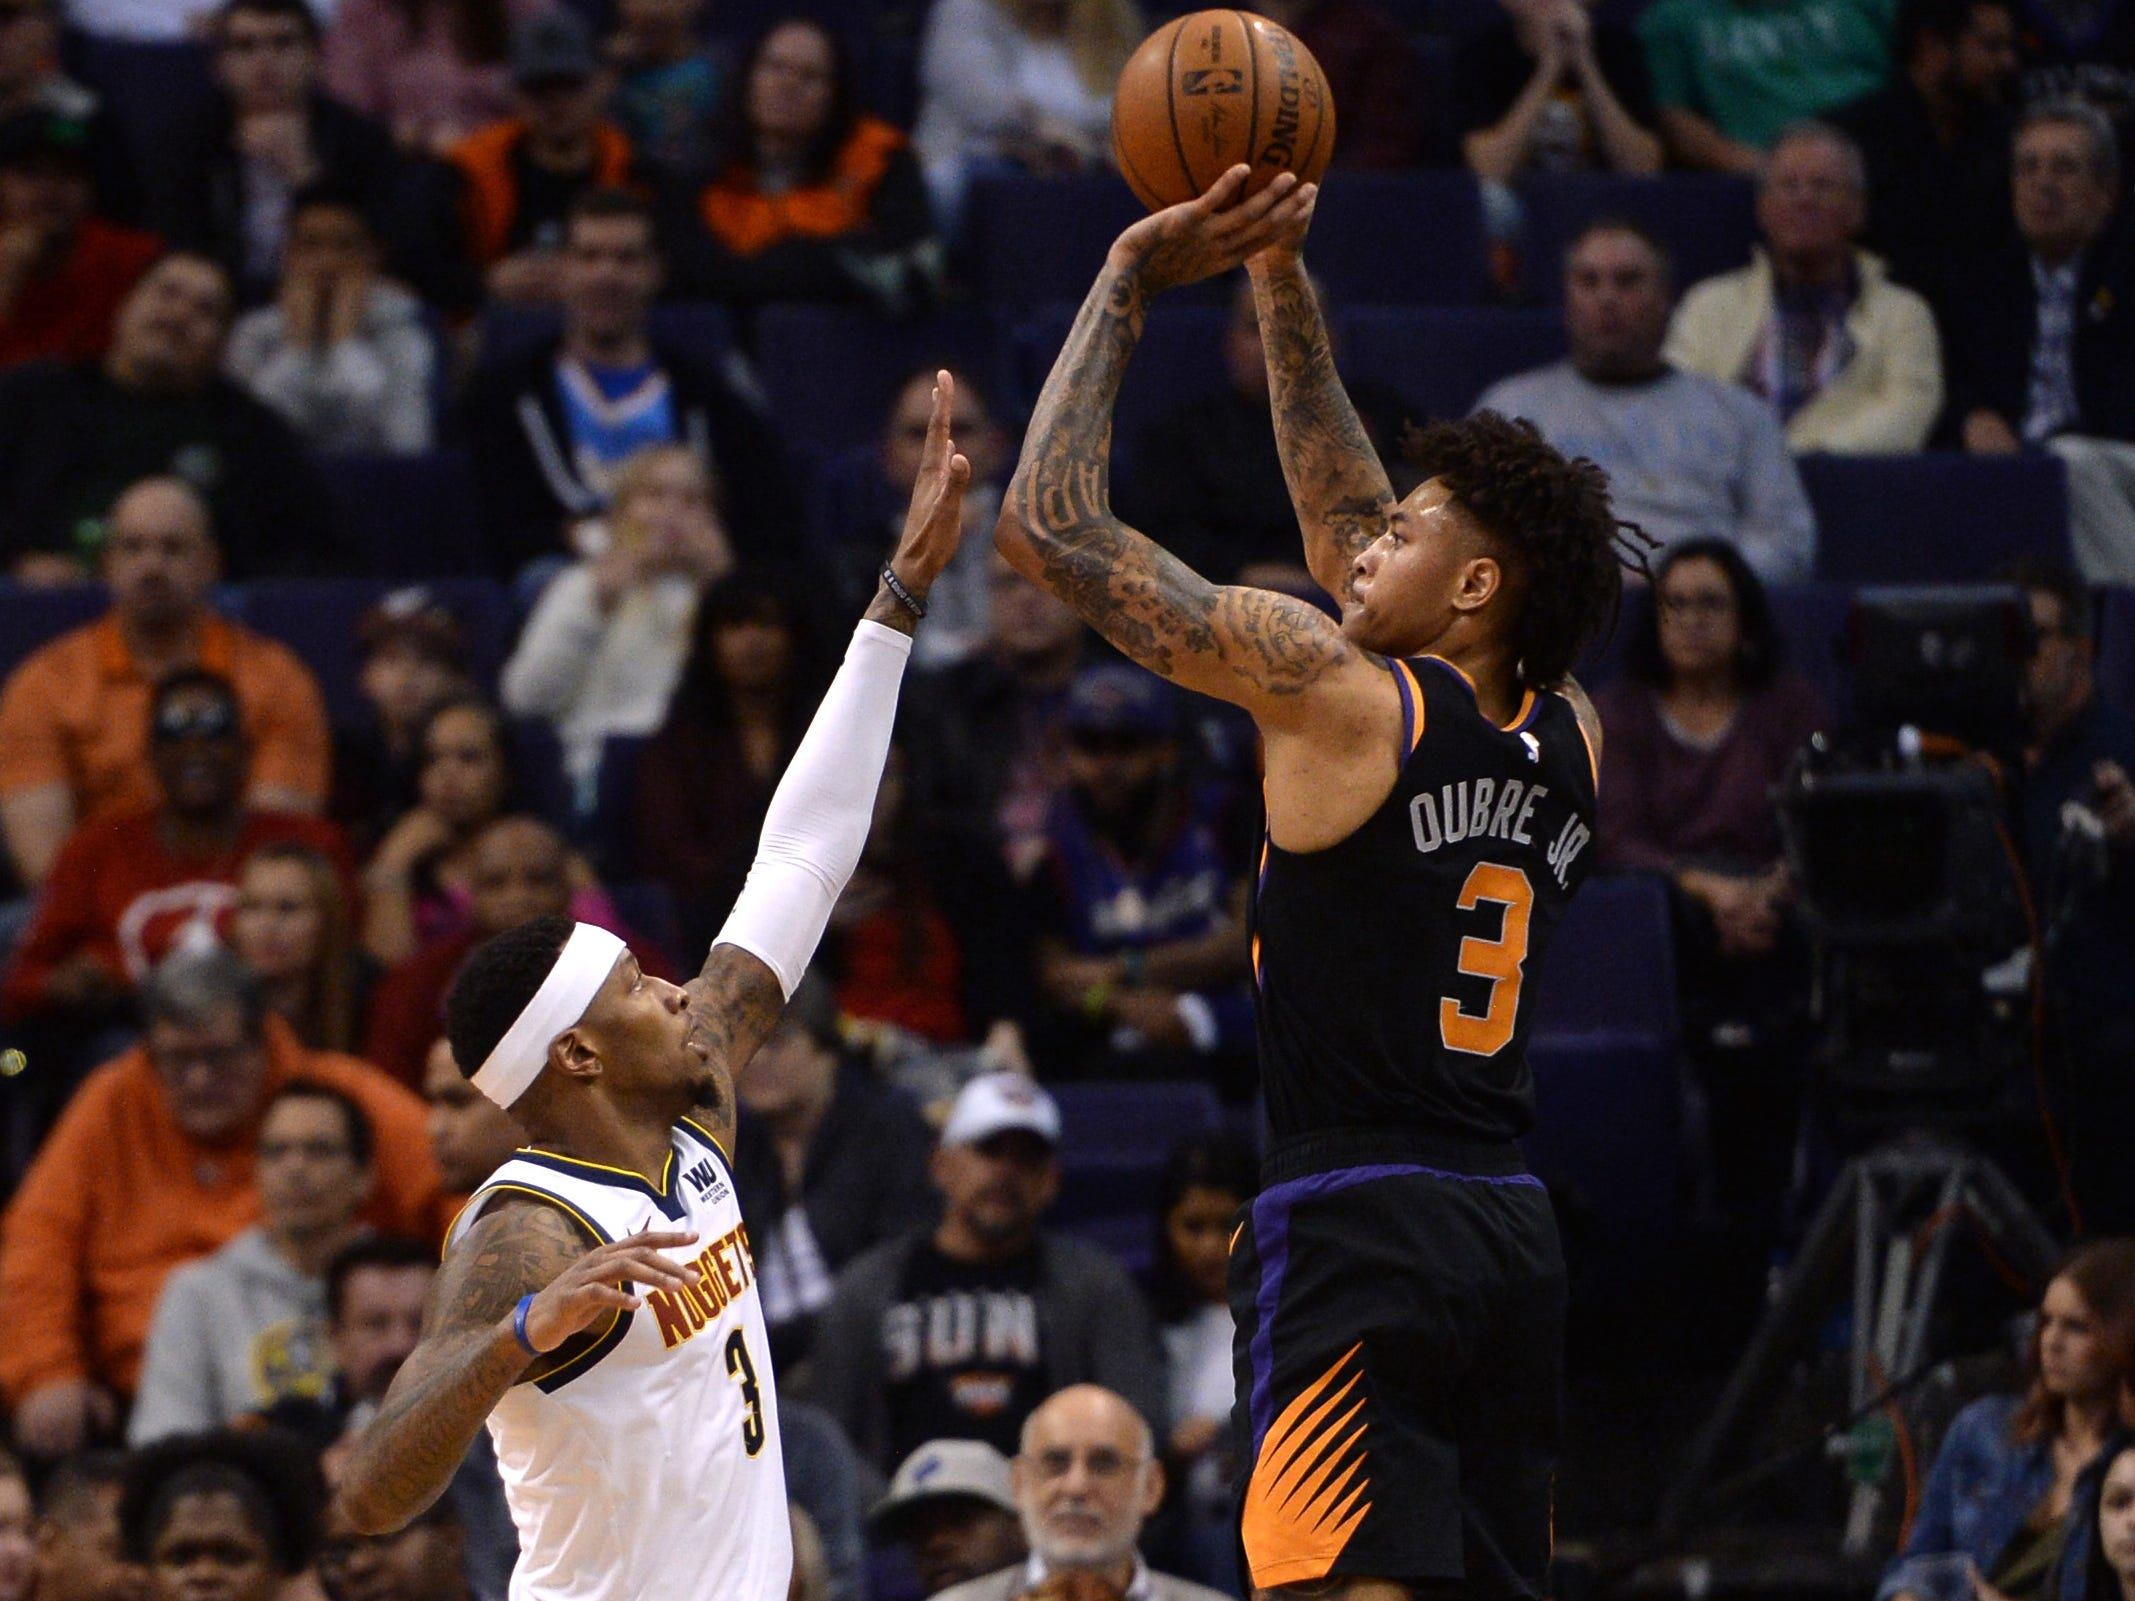 Jan 12, 2019; Phoenix, AZ, USA; Phoenix Suns forward Kelly Oubre Jr. (3) shoots over Denver Nuggets forward Torrey Craig (3). (Joe Camporeale-USA TODAY Sports)